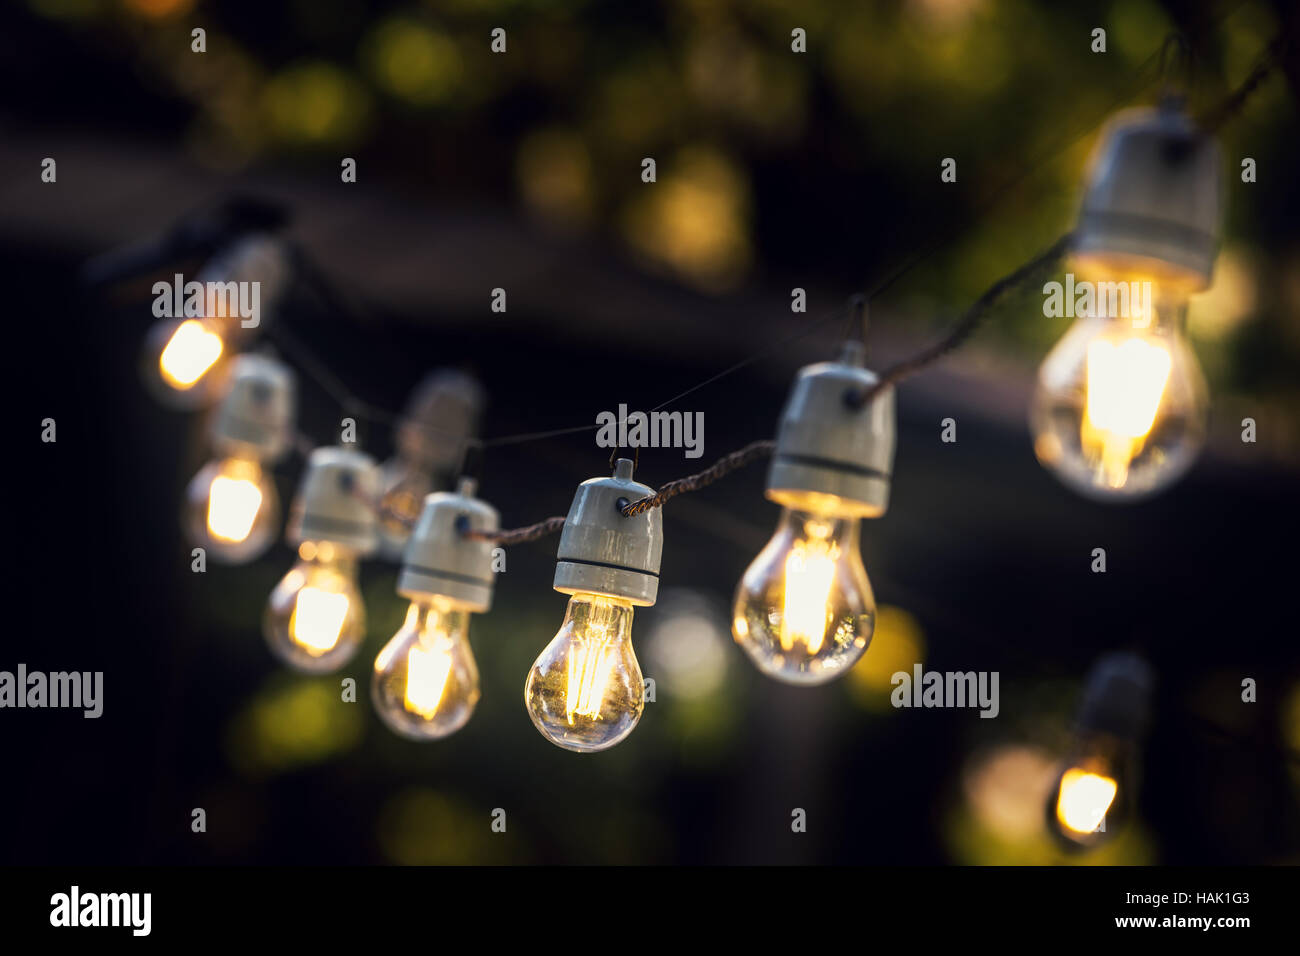 Partie string lights hanging in a line Photo Stock